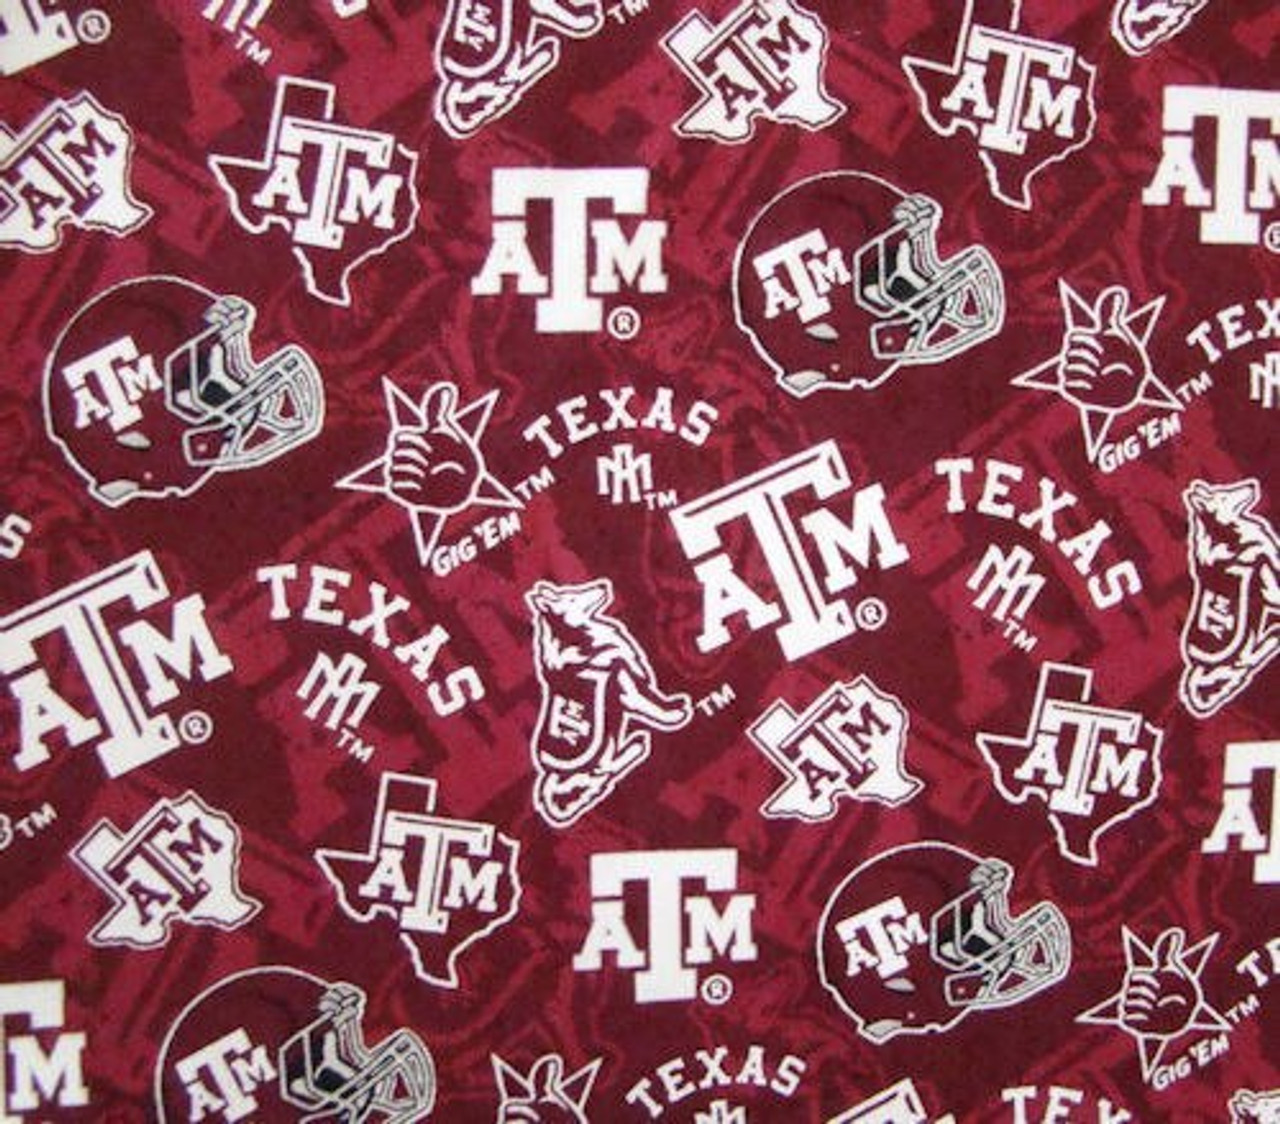 Texas A&M Gig Em Maroon Tone on Tone